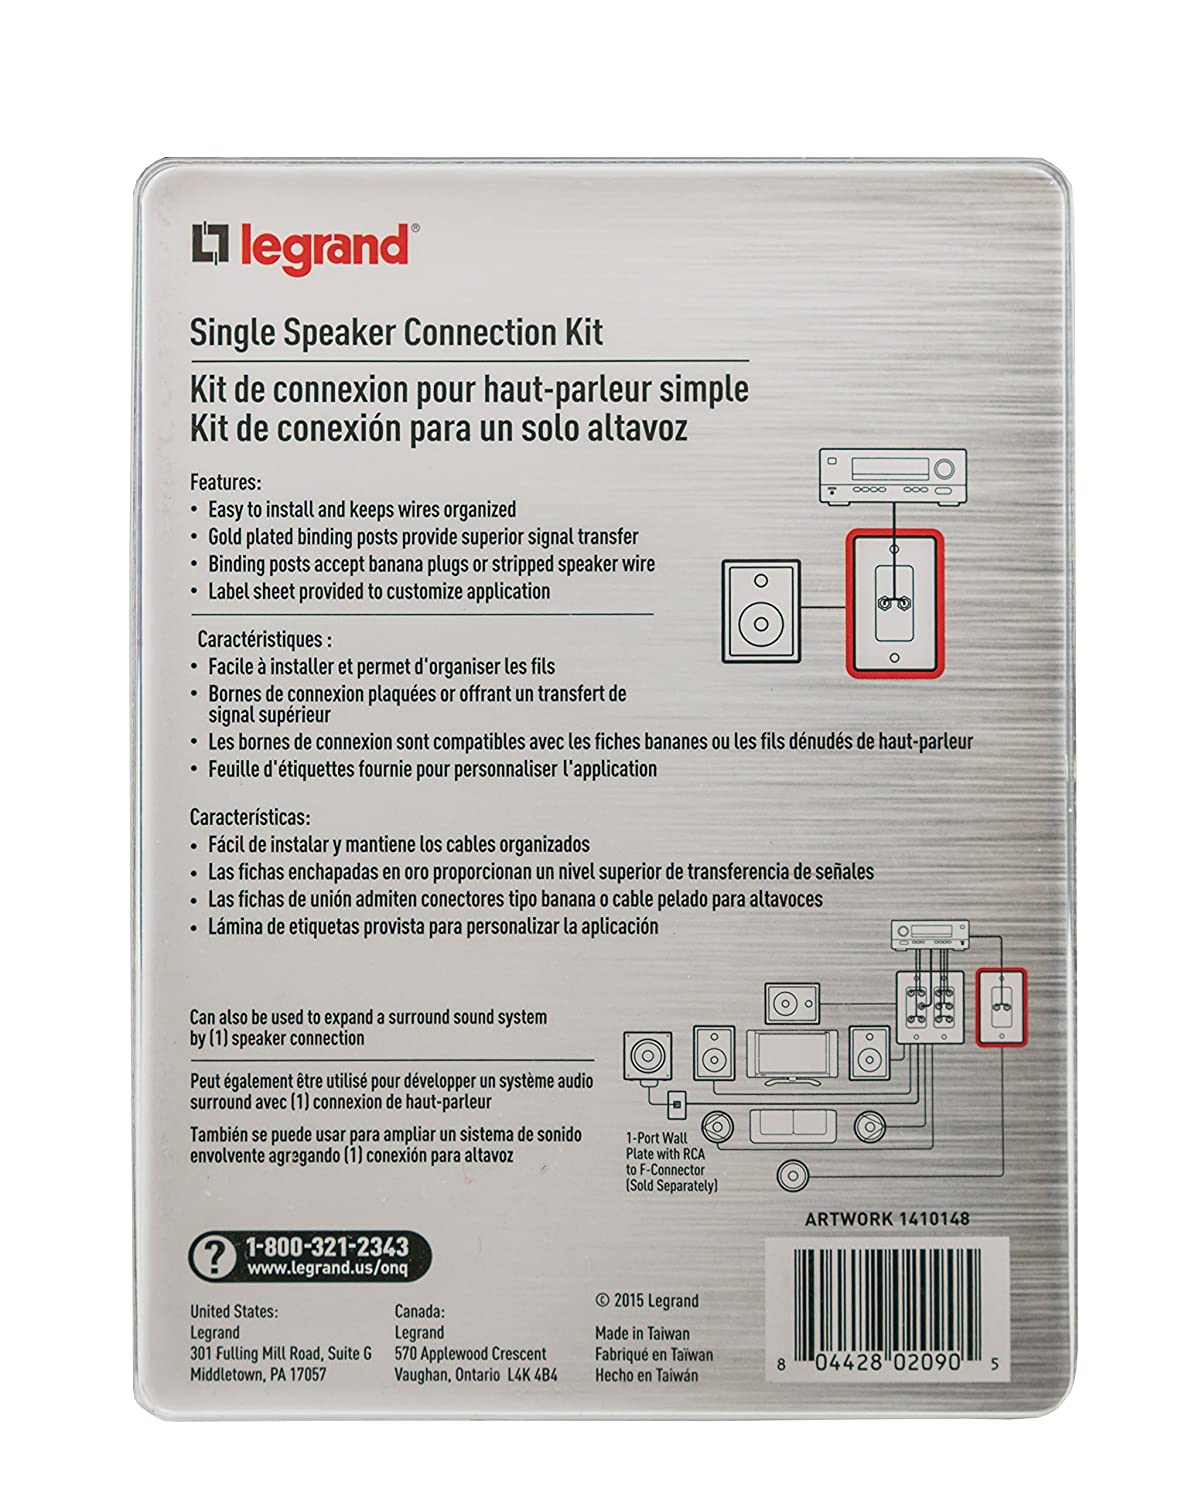 Amazon.com: Legrand - On-Q 6.1 Home Theater Expansion Kit, White, F9006-WH-V1: Industrial & Scientific